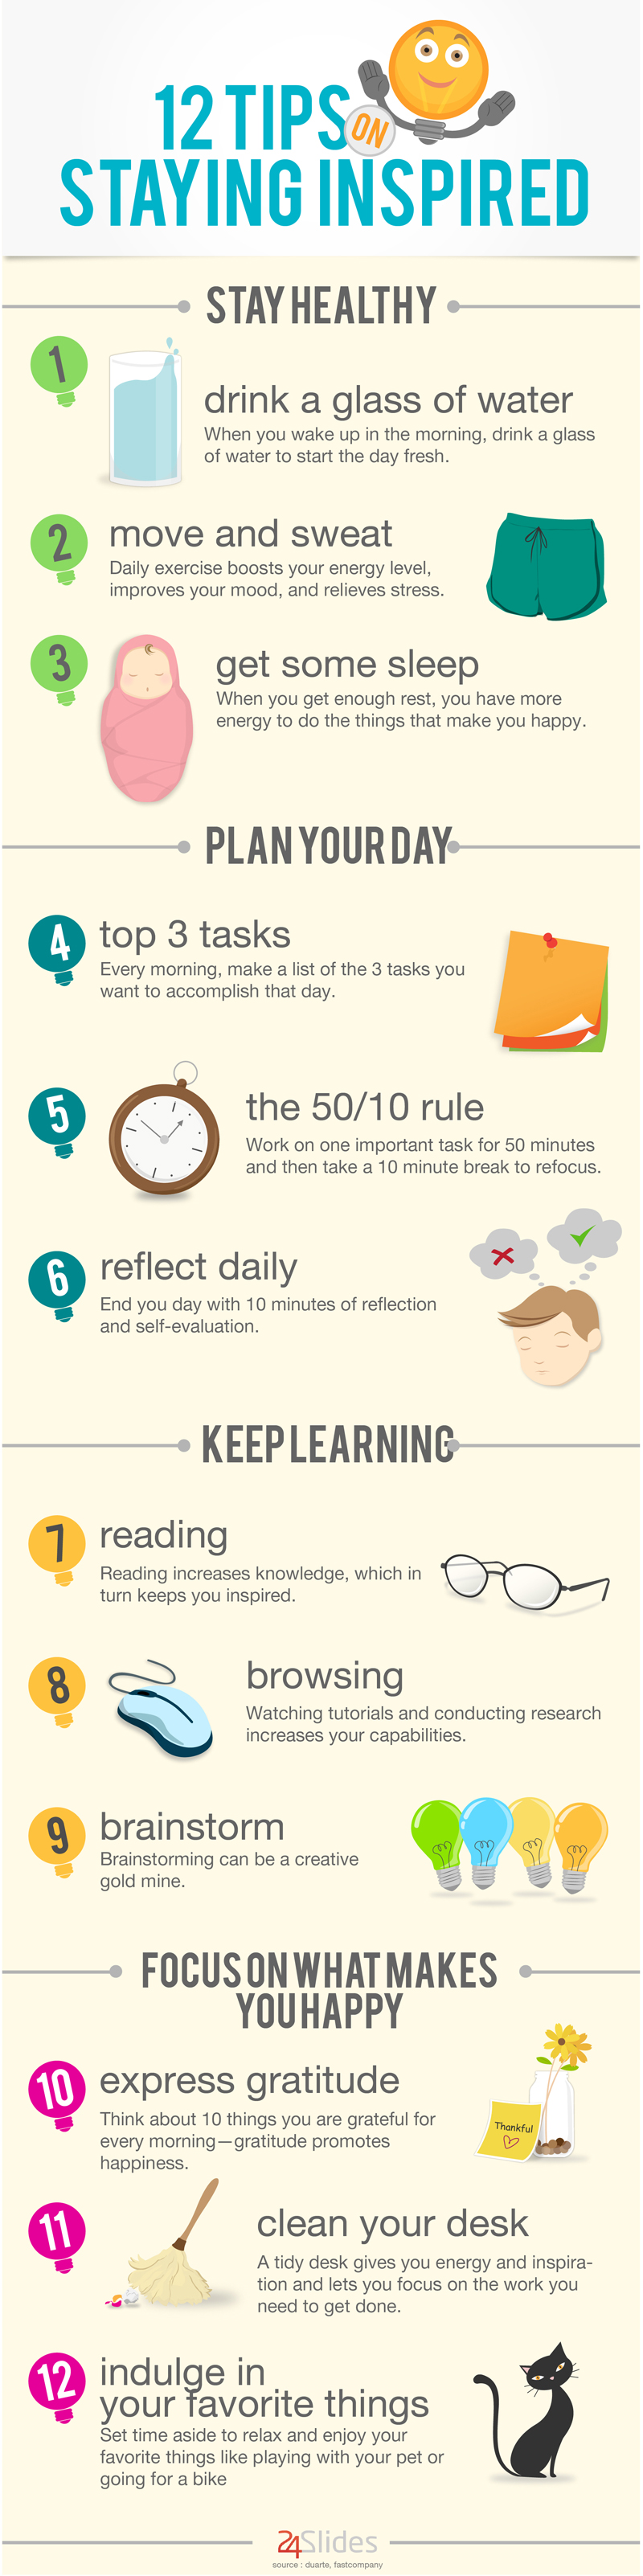 [INFOGRAPHIC] 12 Tips On Staying Inspired - An Infographic from BLOG